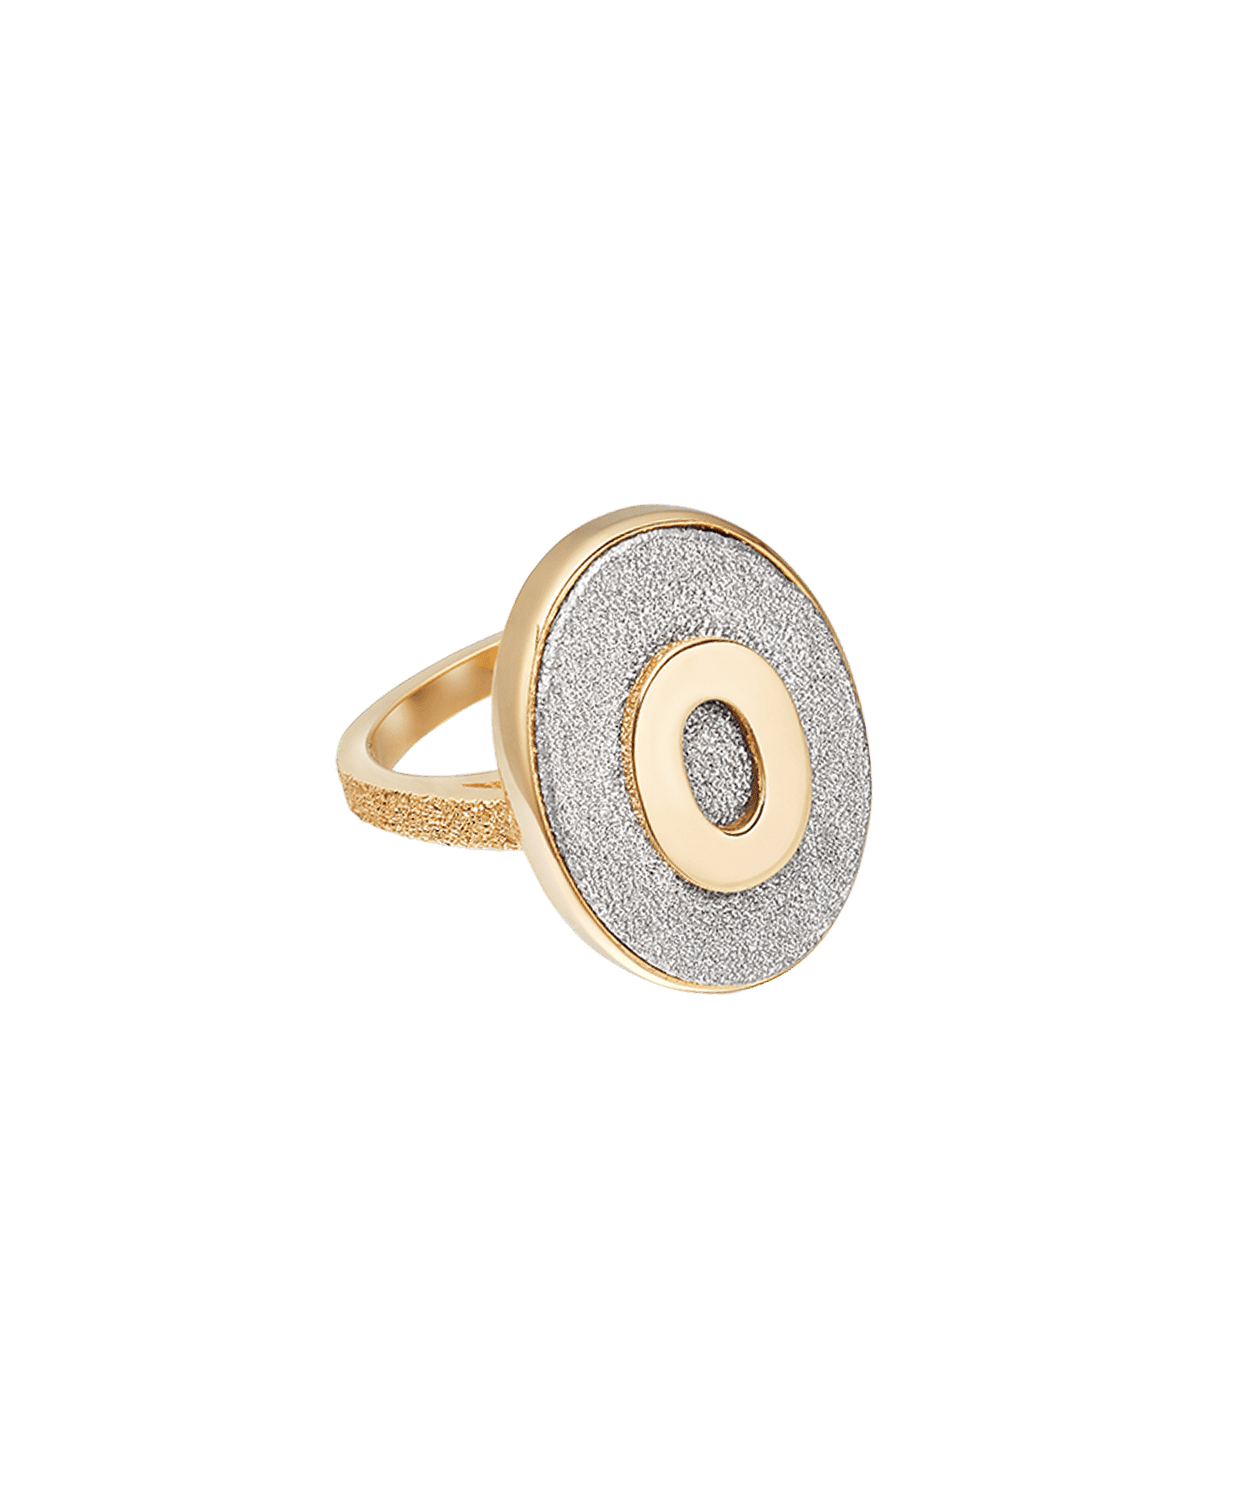 Carolina Bucci Florentine Finish Initial Ring Yellow Gold